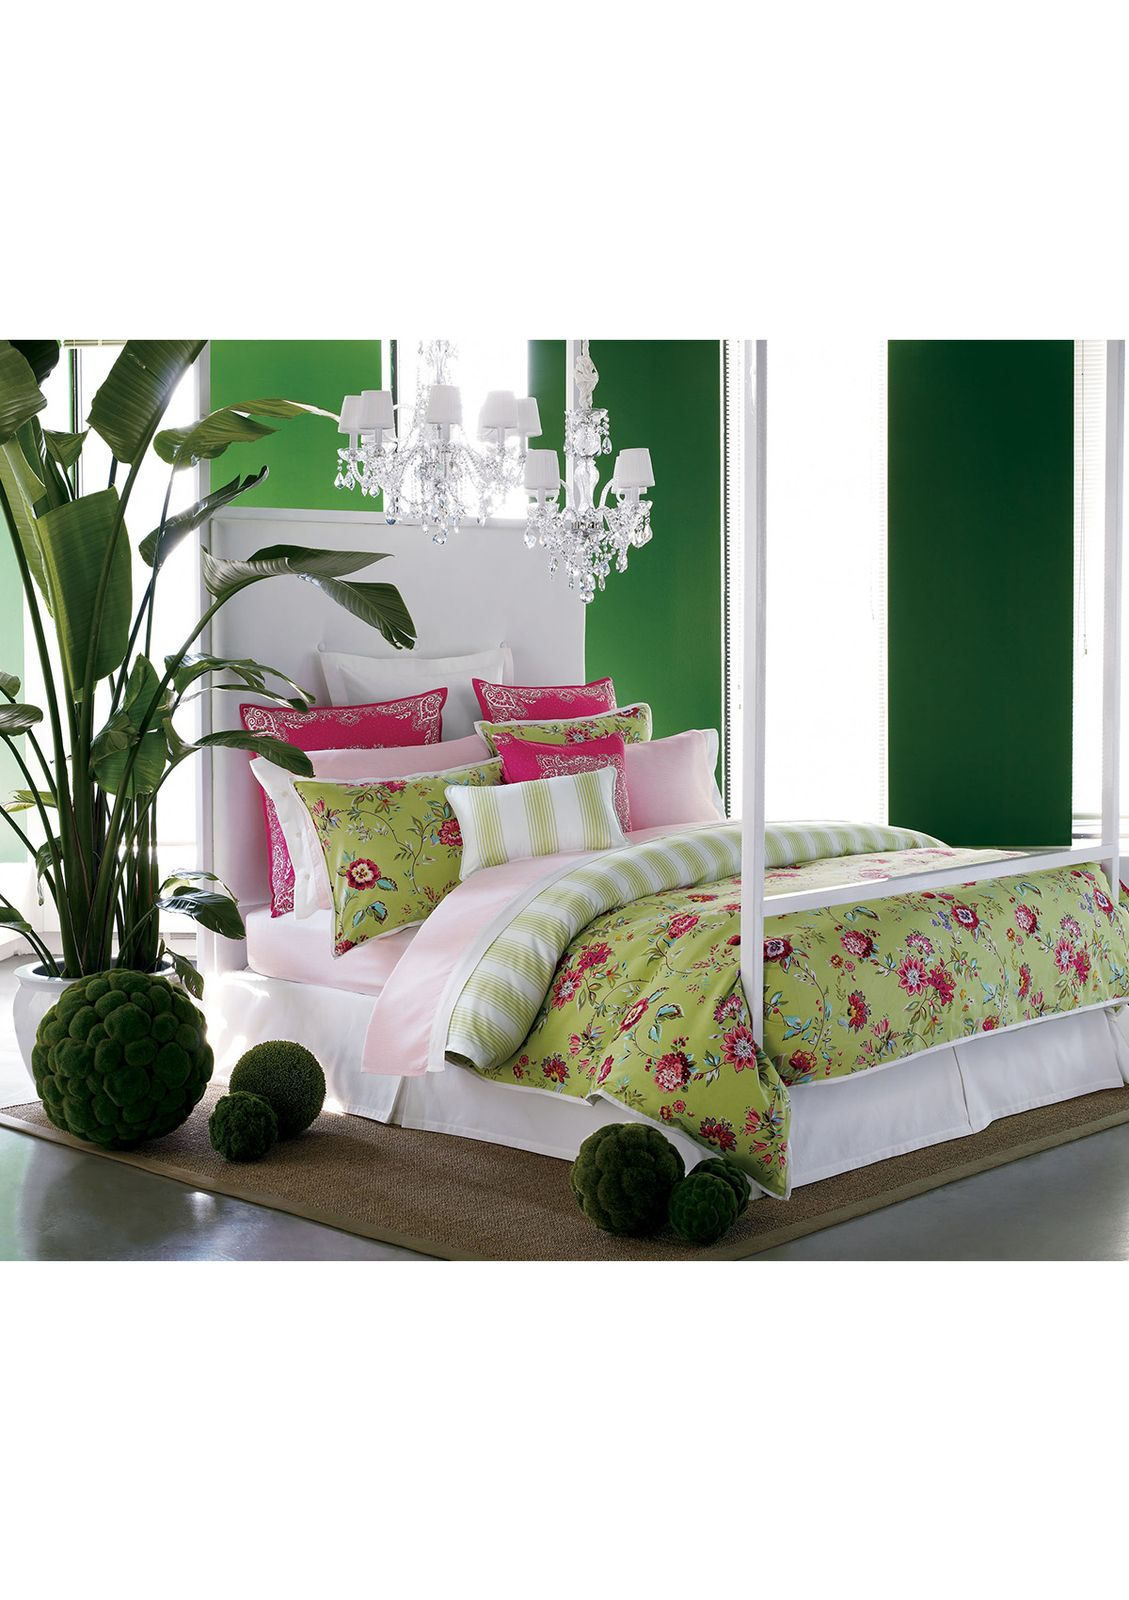 Deep Green Of Wall Offsets Tones Floral